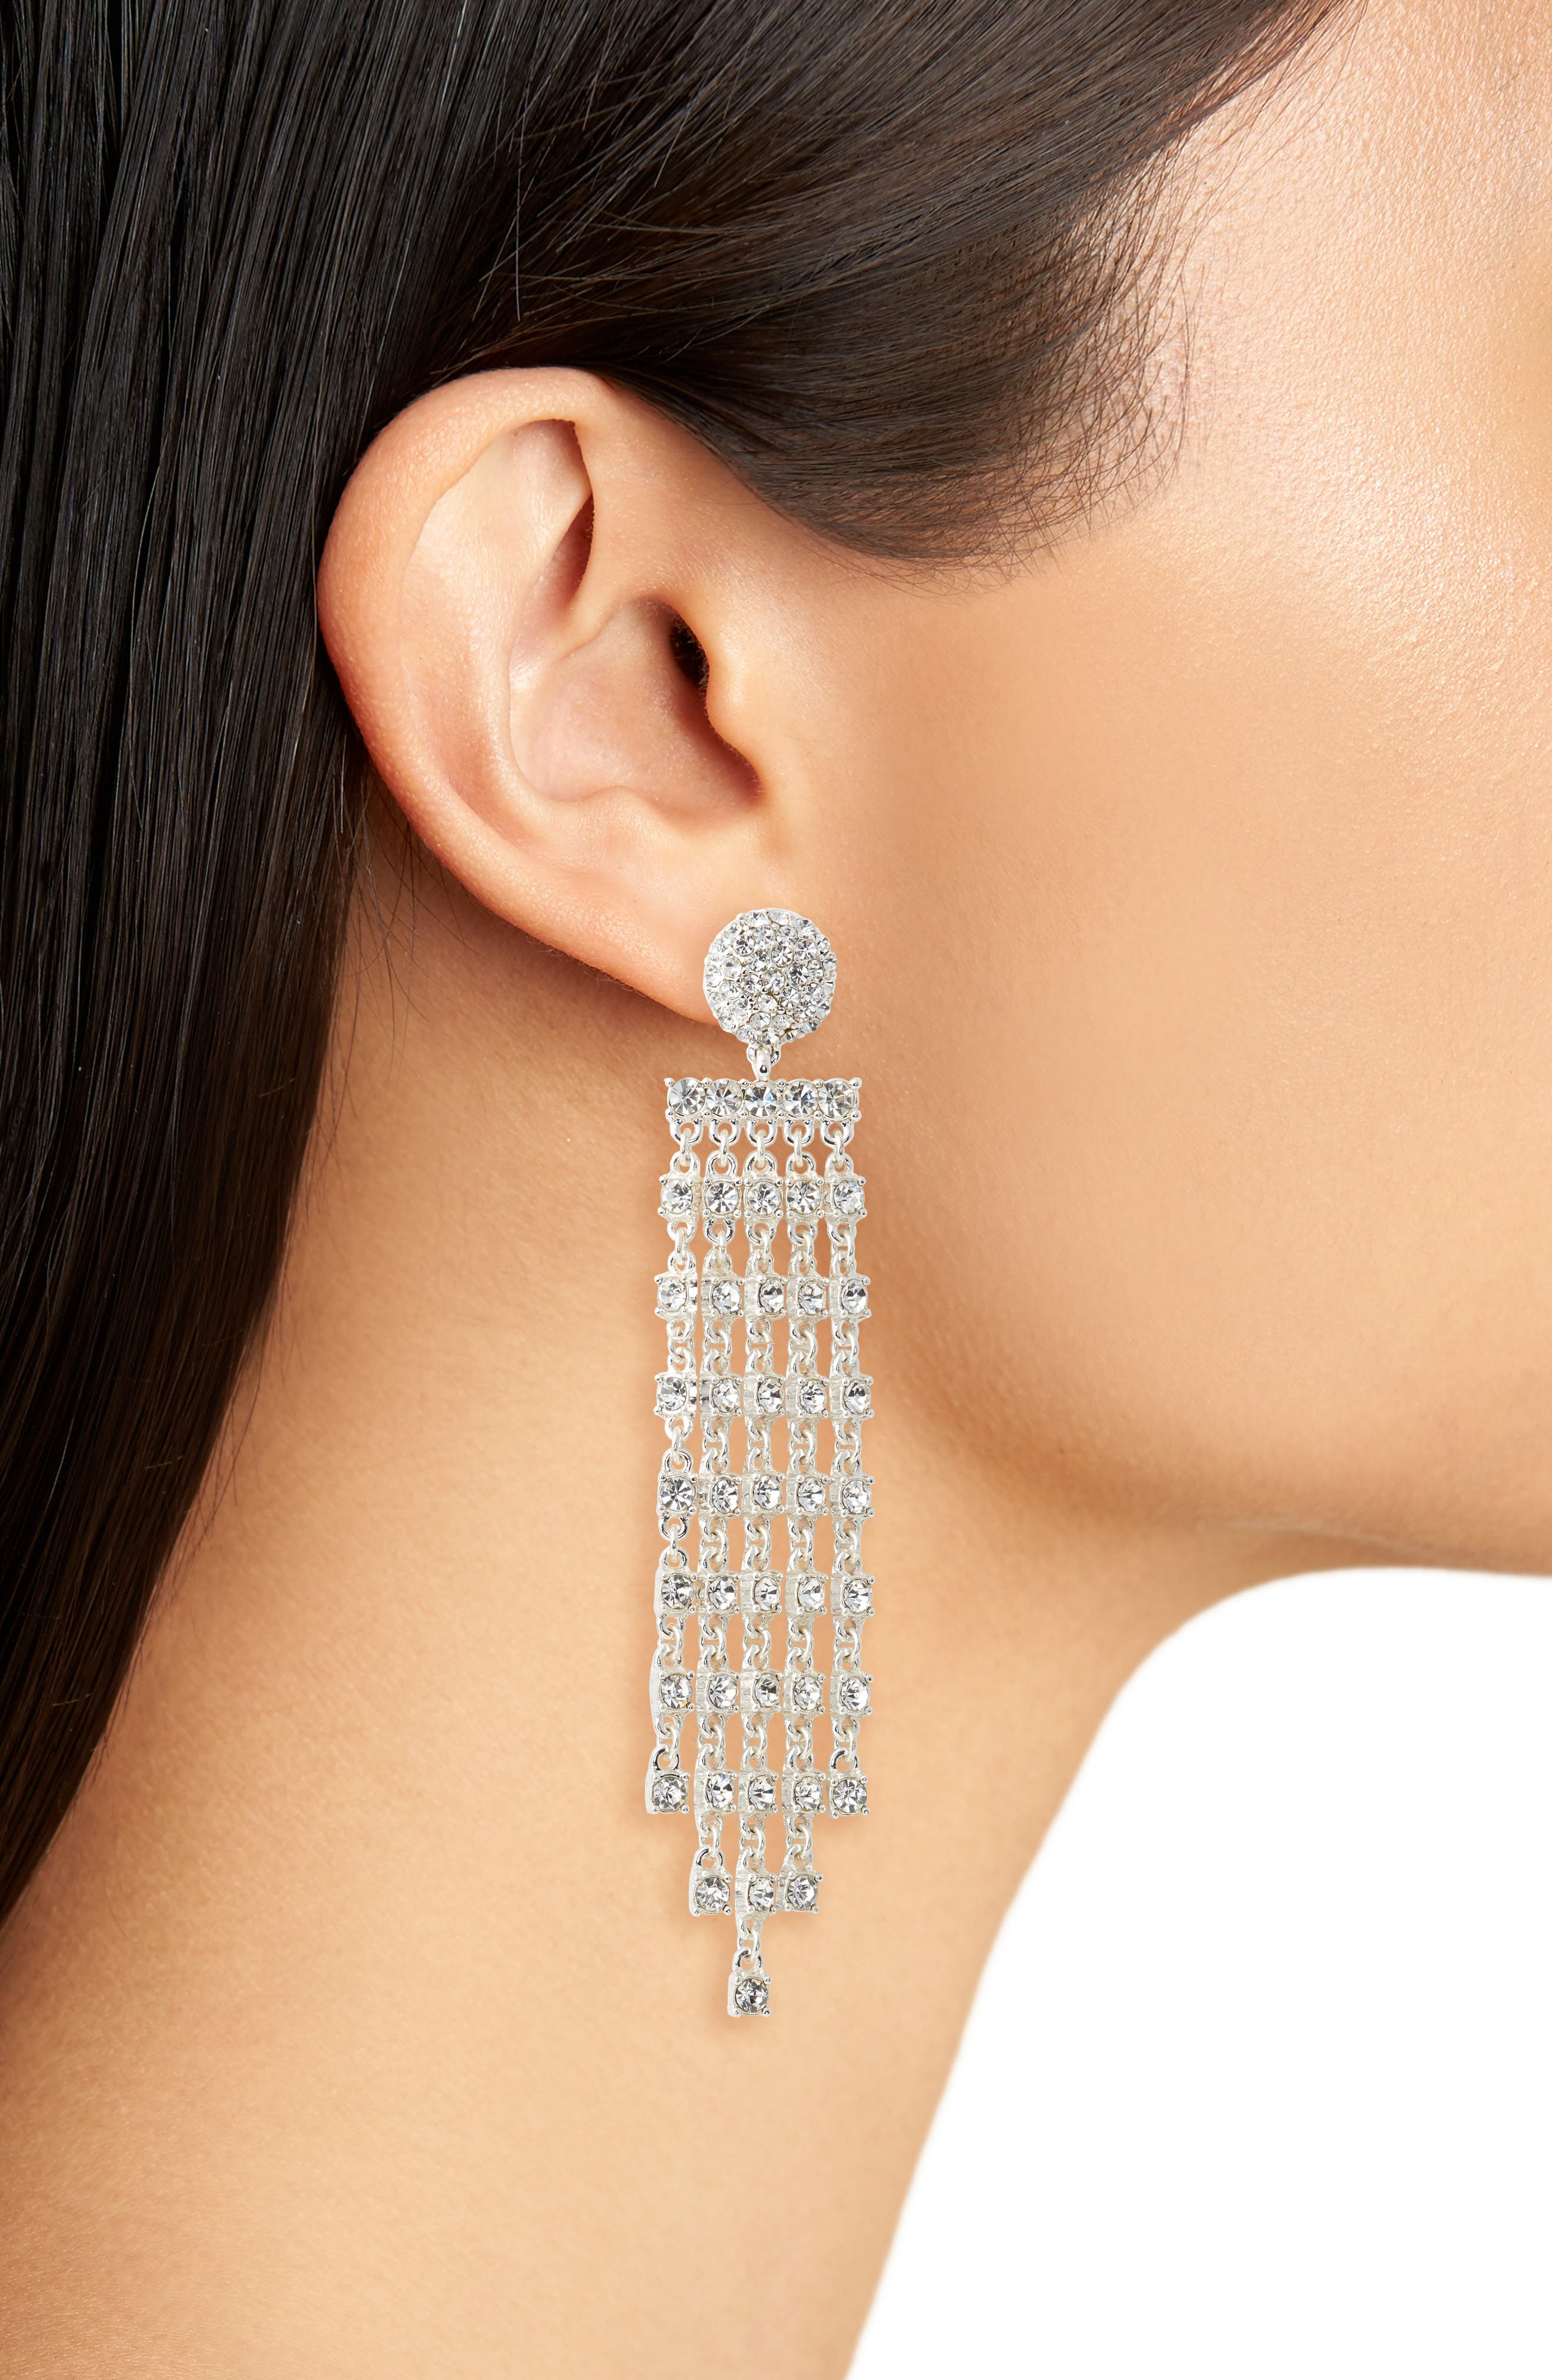 Prima Donna Crystal Drop Earrings,                             Alternate thumbnail 2, color,                             040